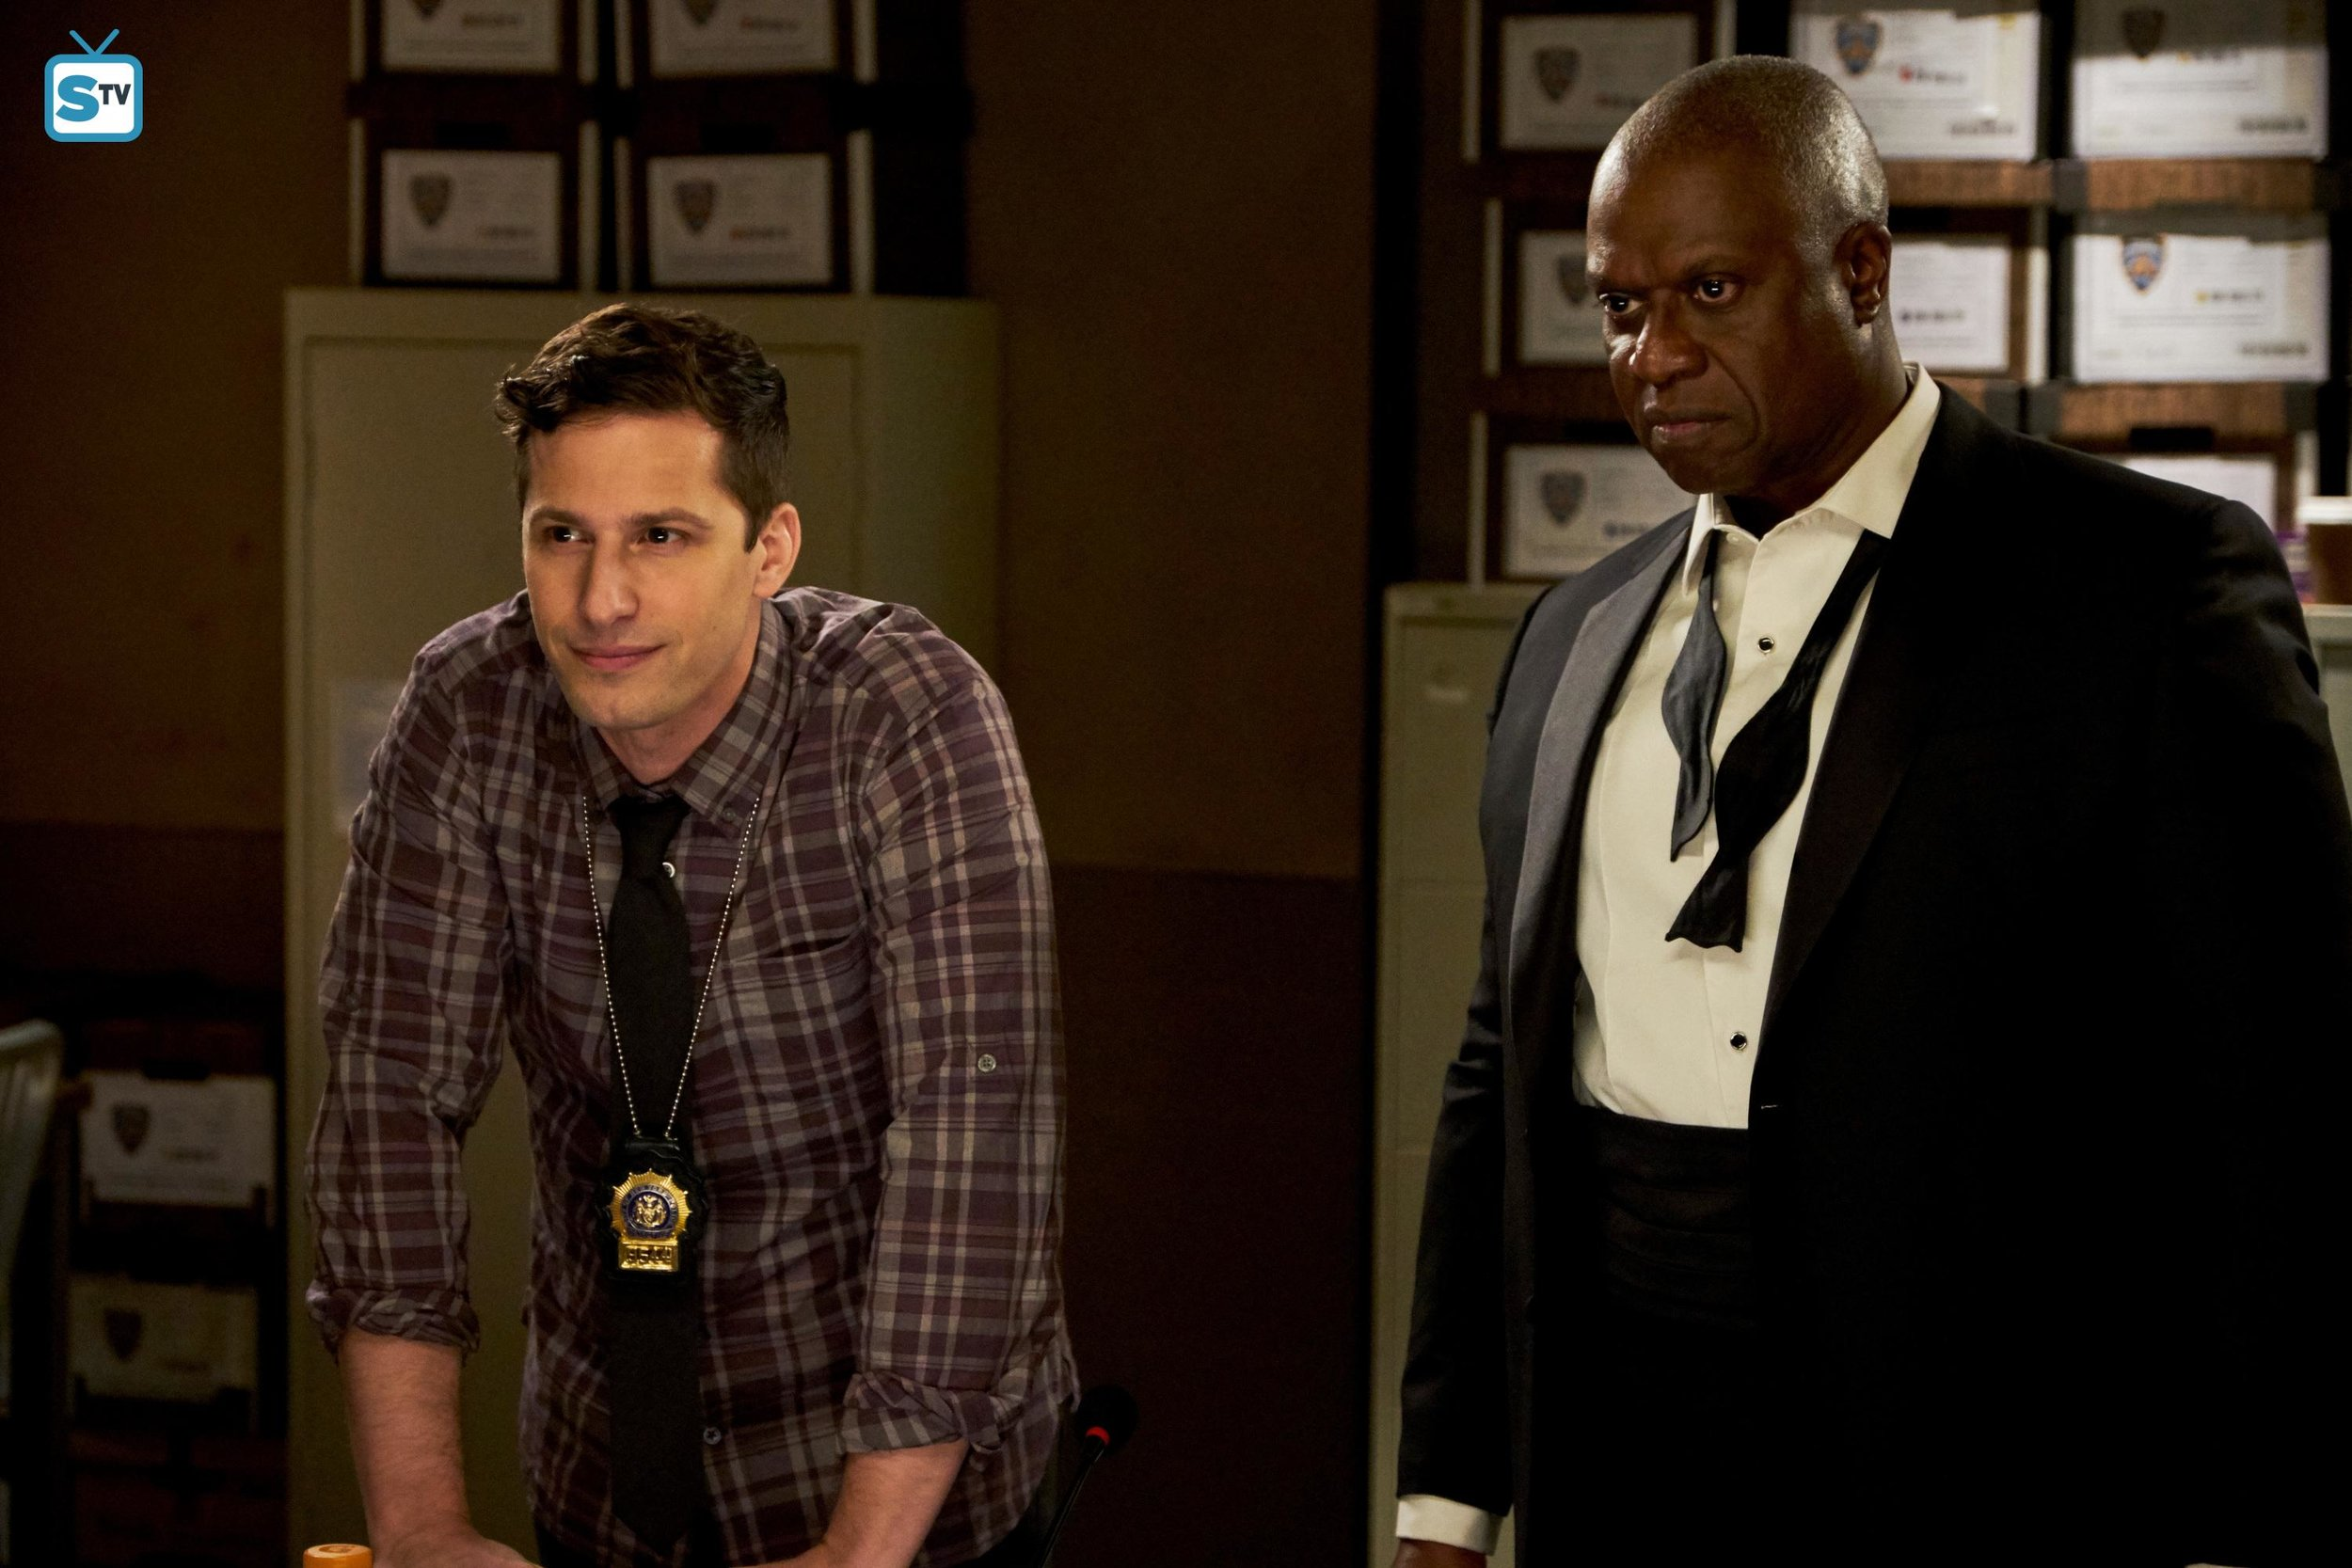 The relationship between Jake and Holt is at the heart of this episode